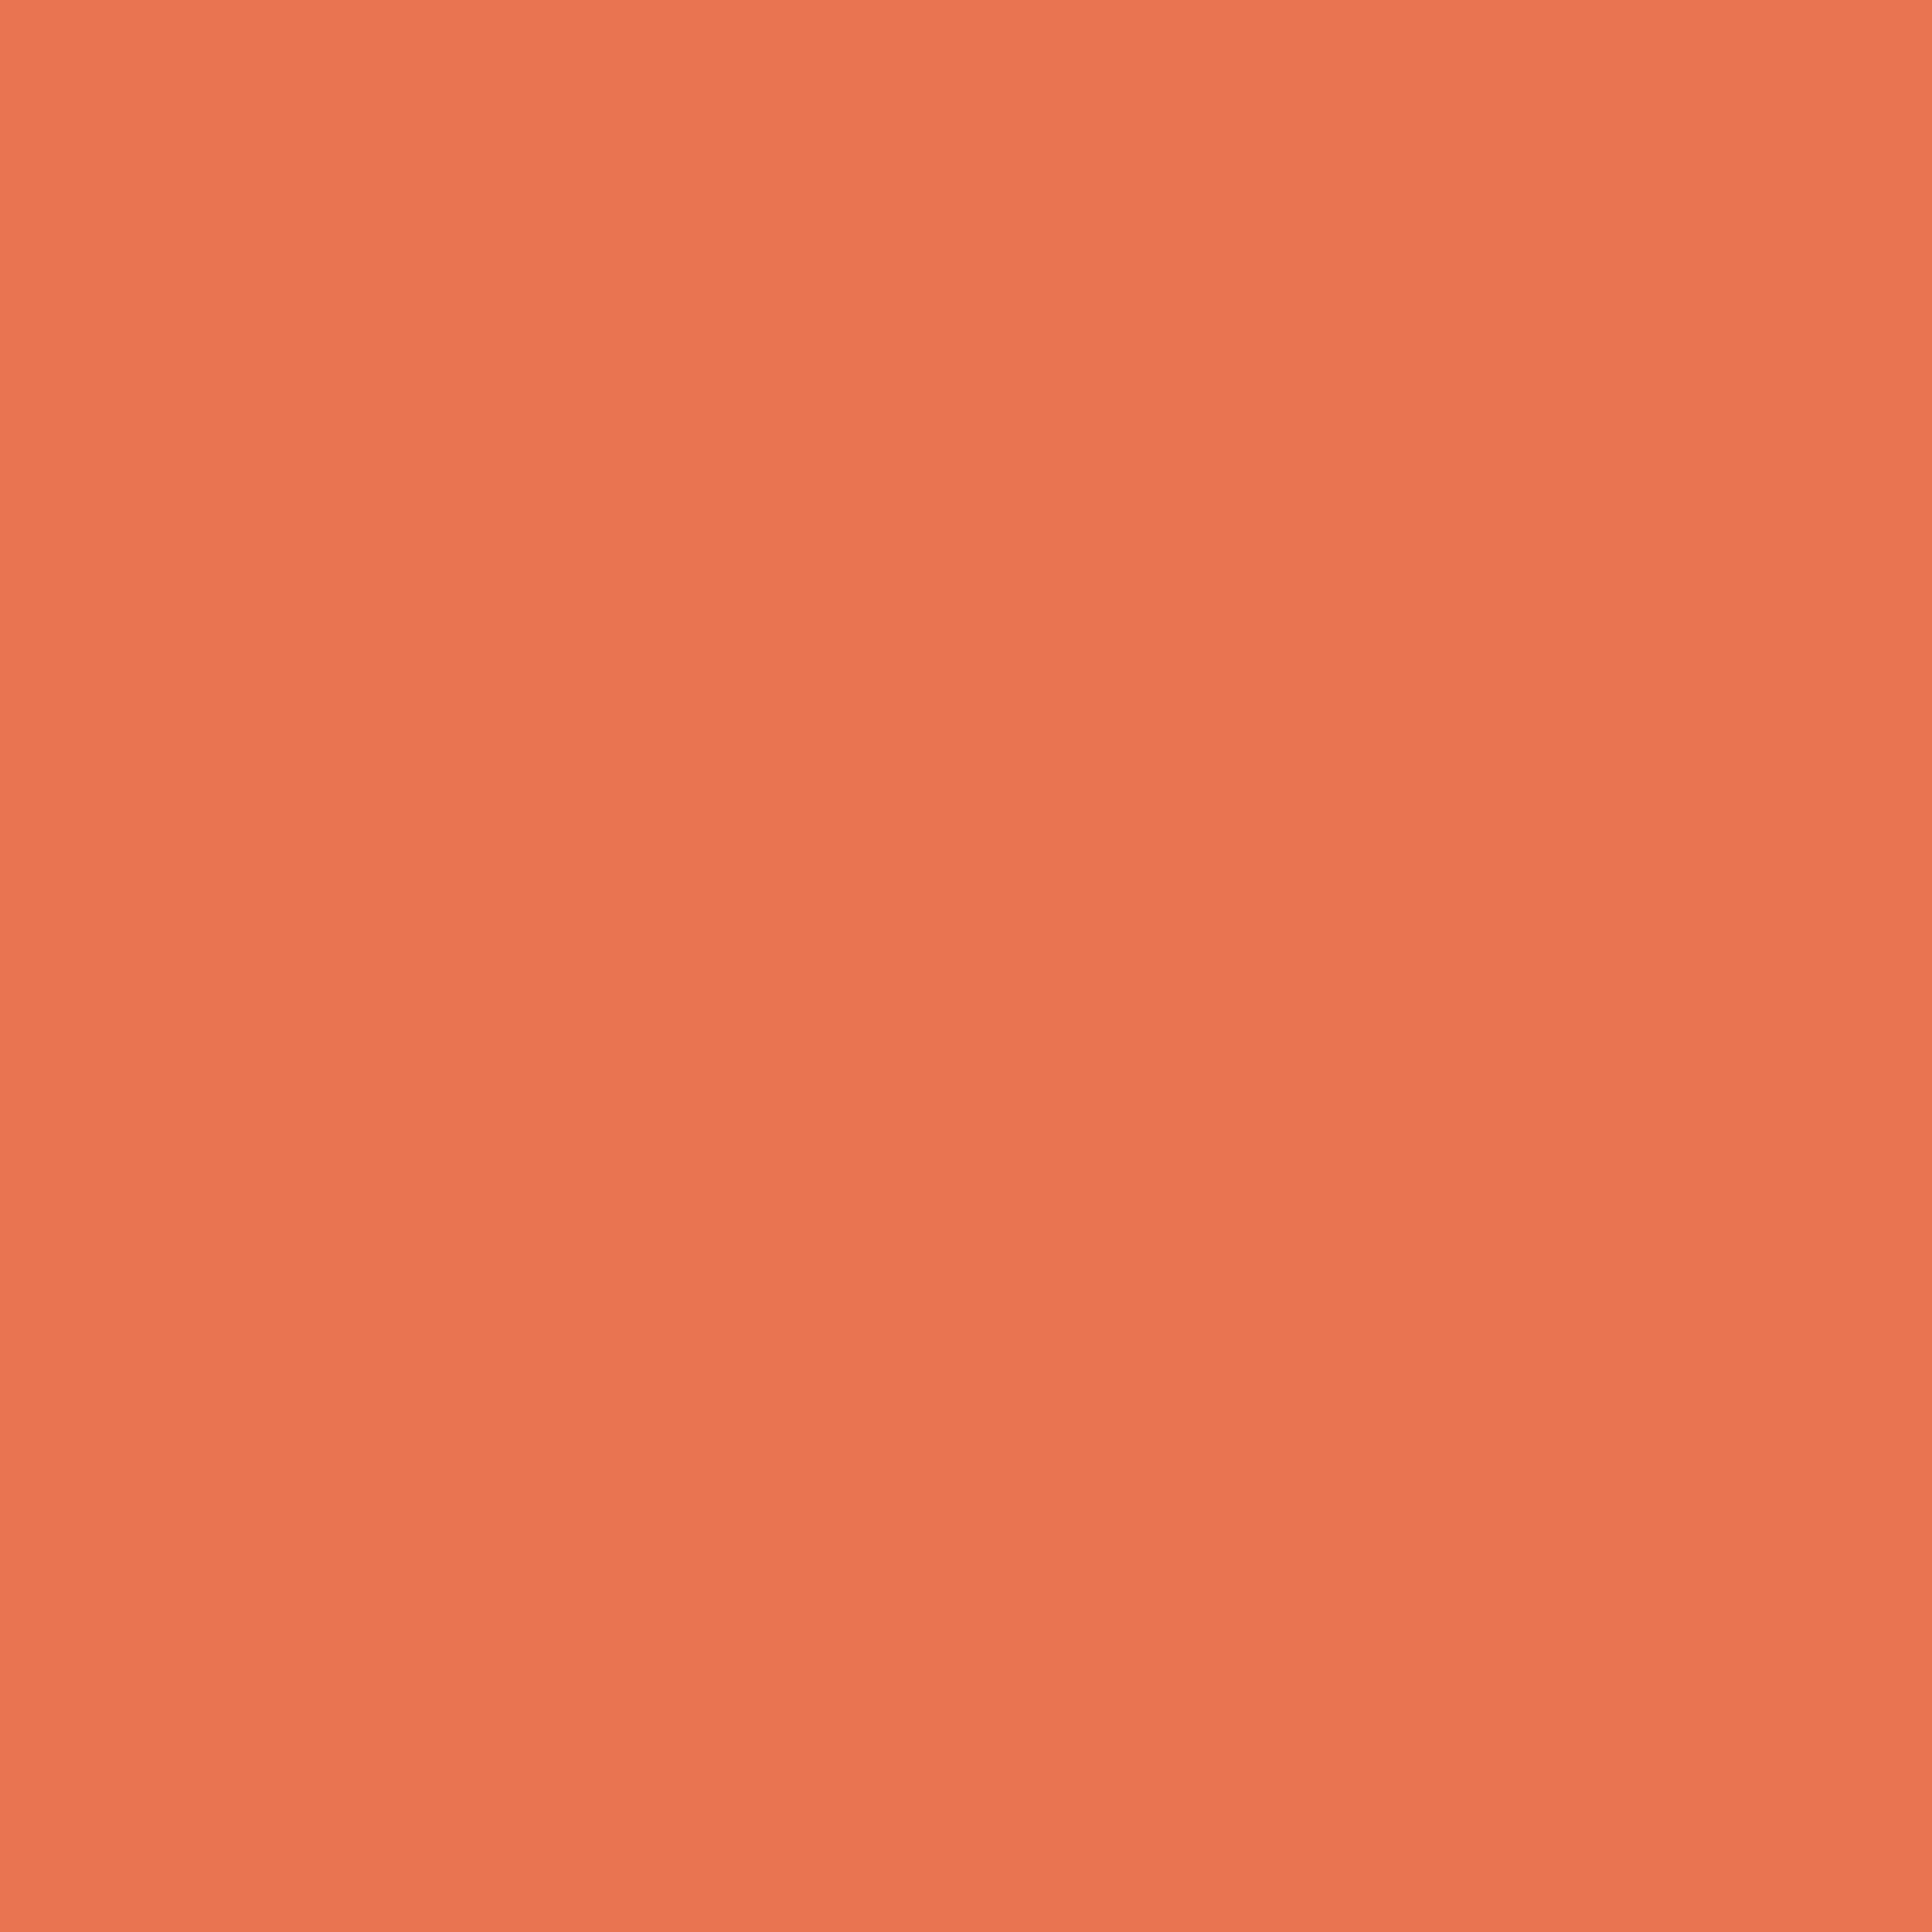 2048x2048 Light Red Ochre Solid Color Background